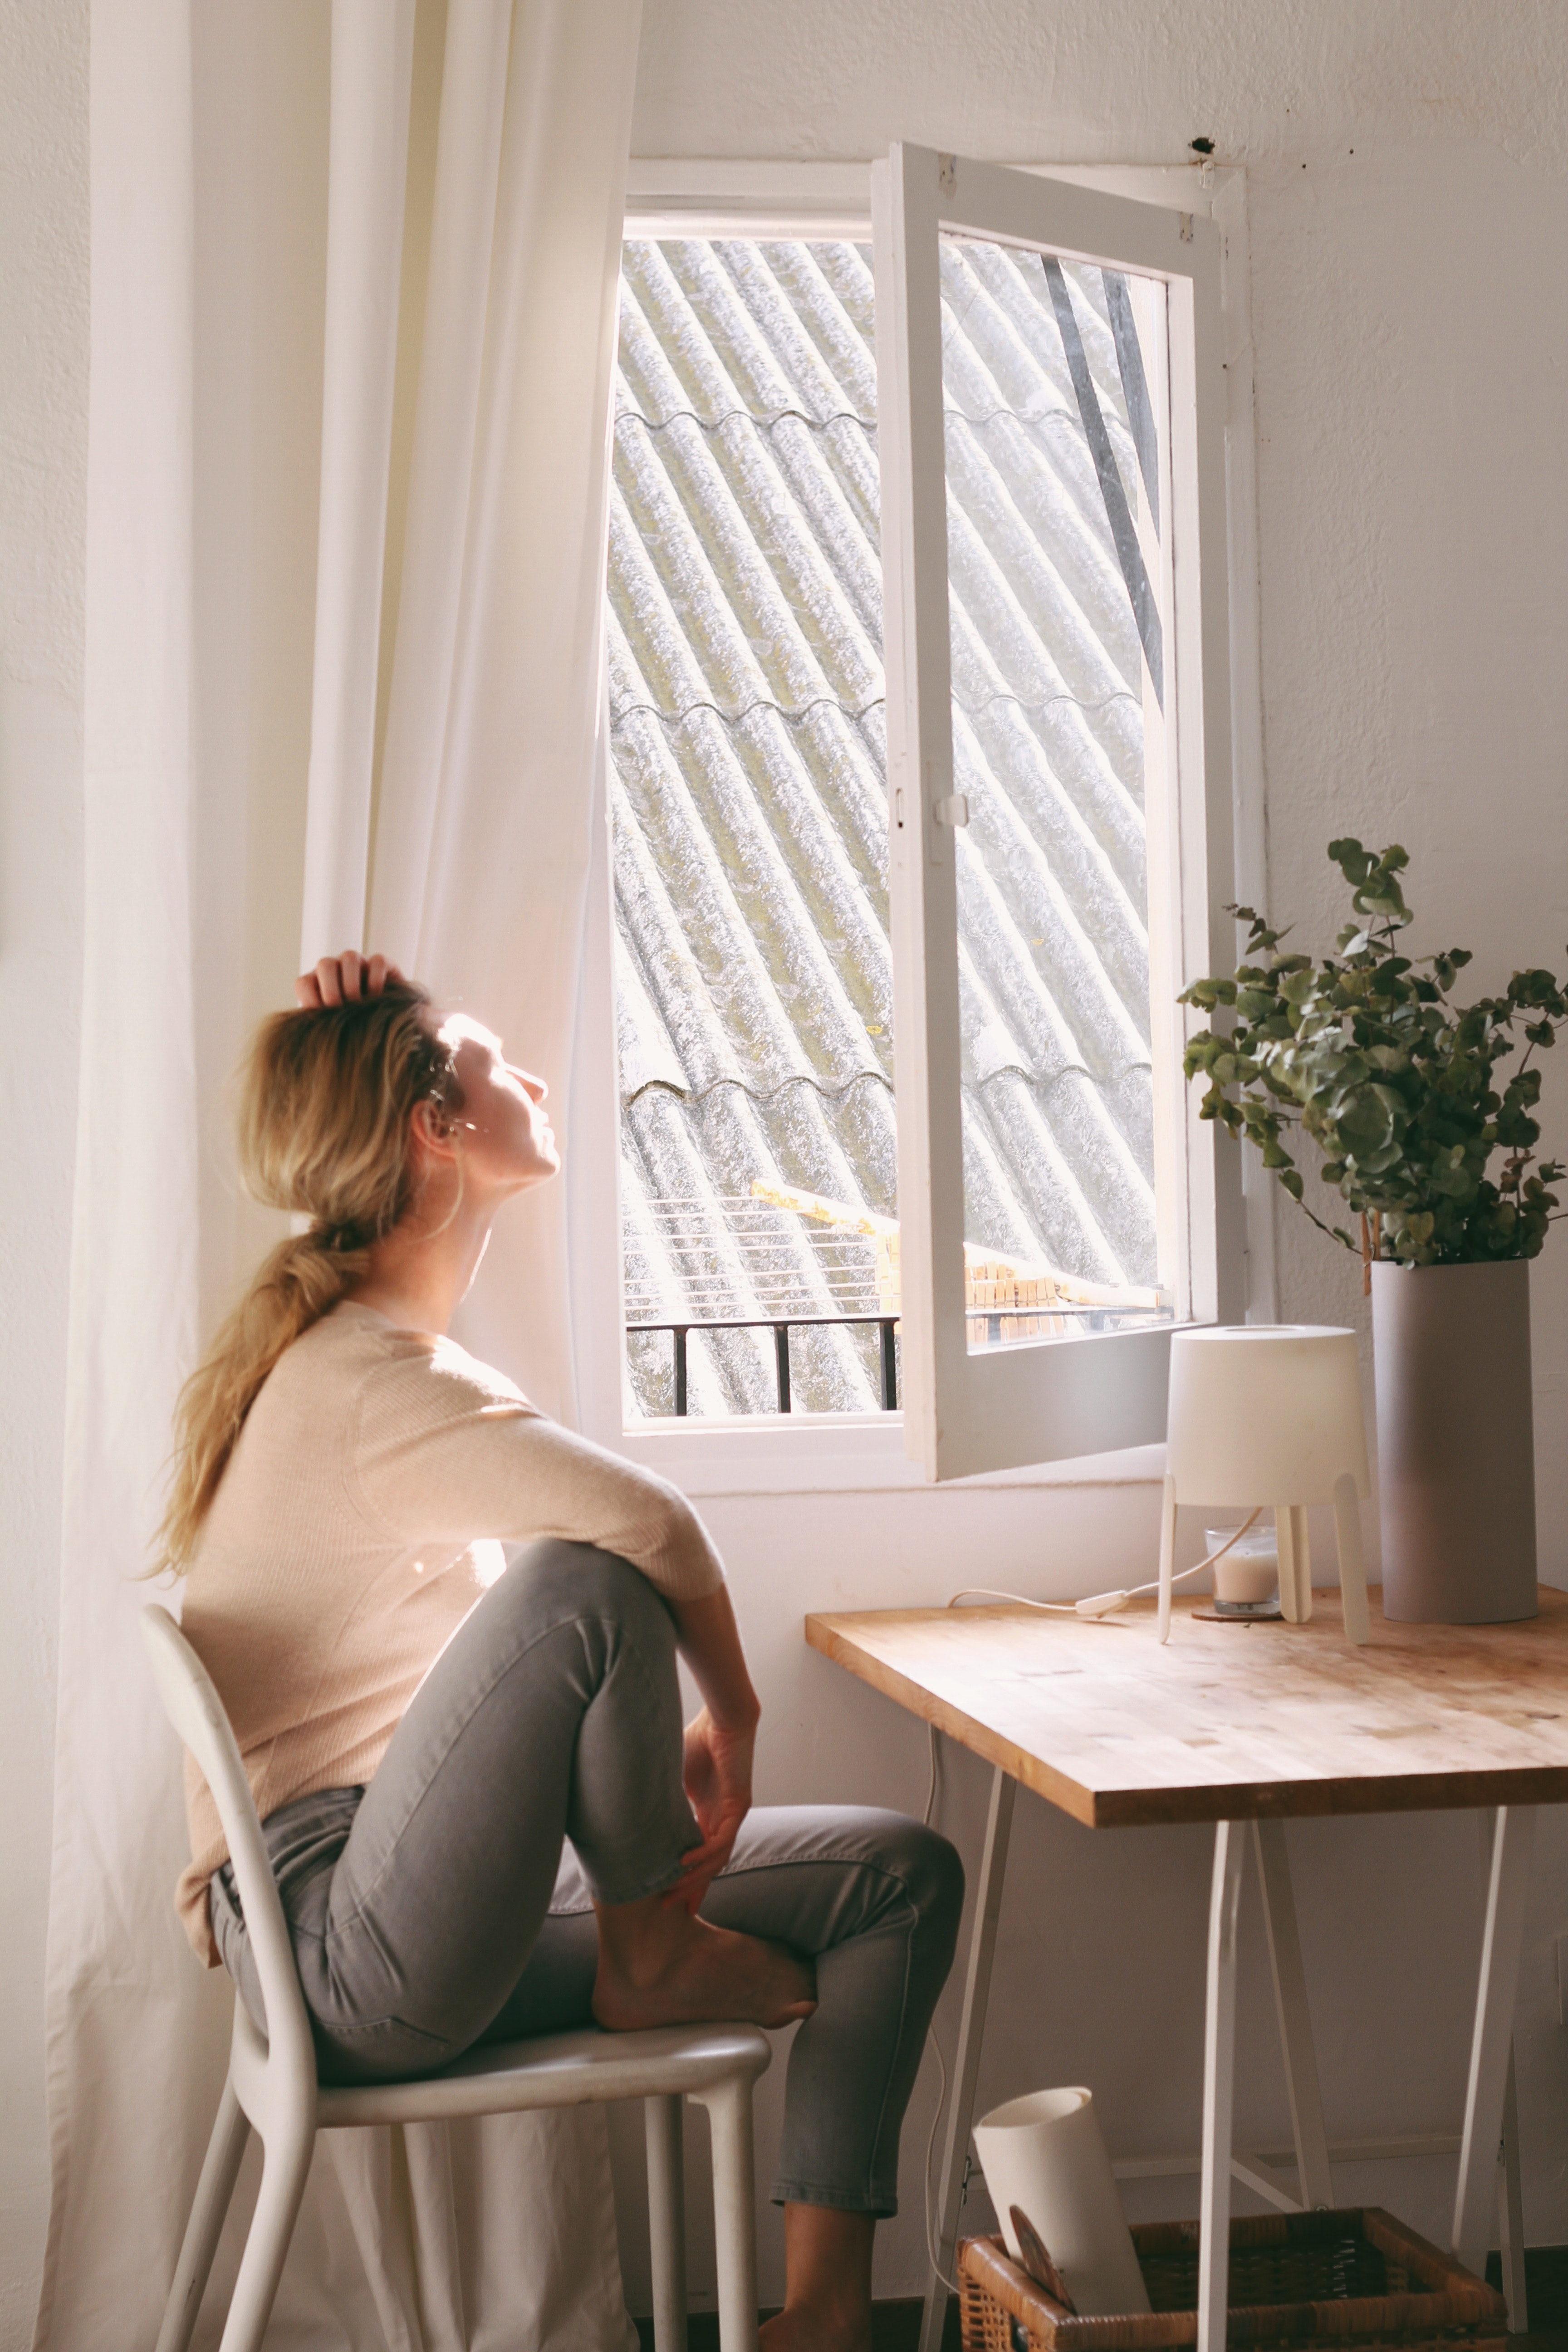 Woman sitting at a desk looking out the window